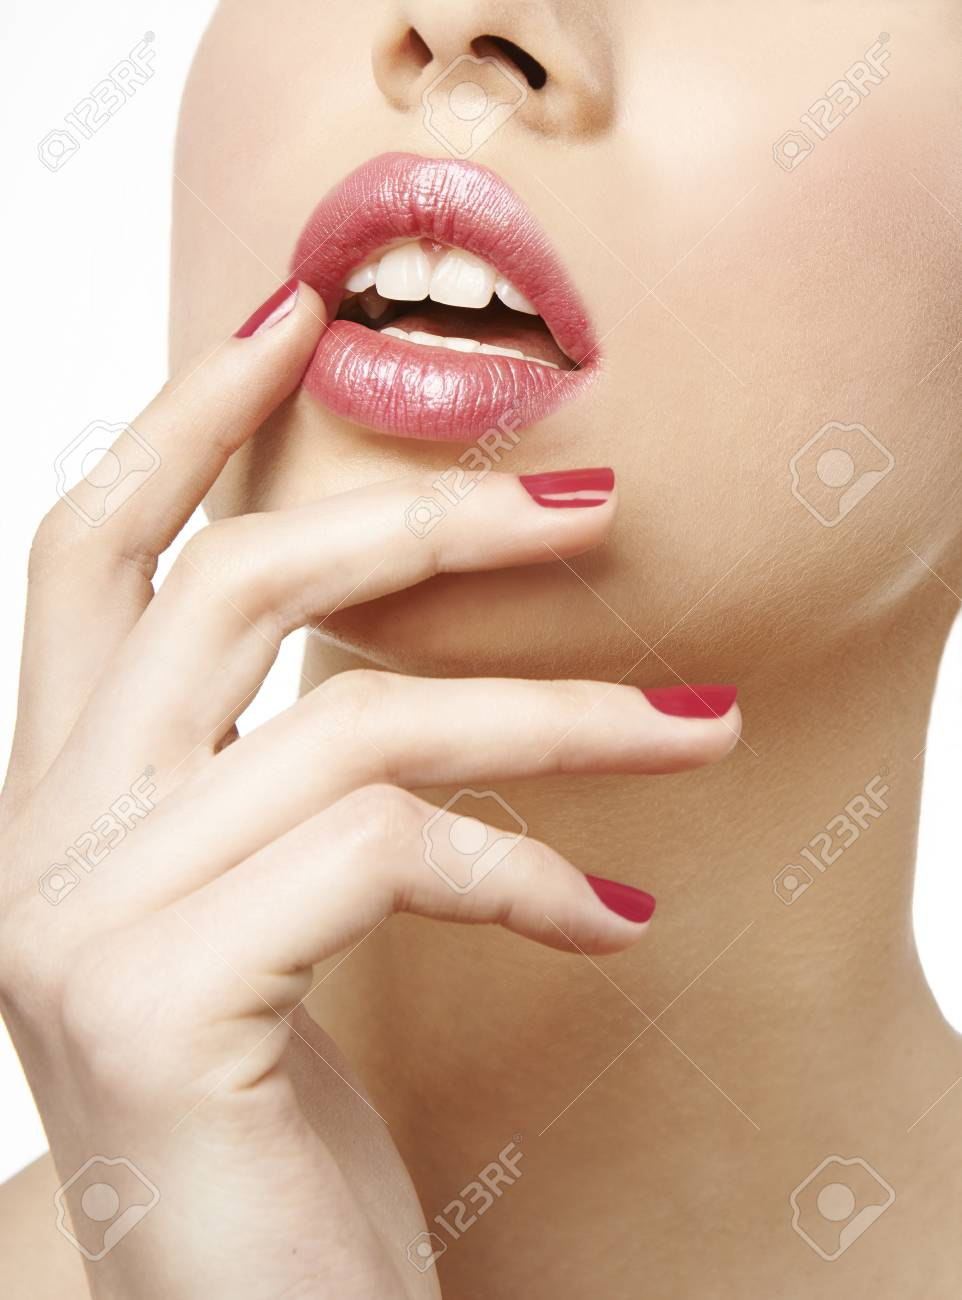 Woman Close Up With Pink Glossy Lipstick And Red Nail Polish Stock ...